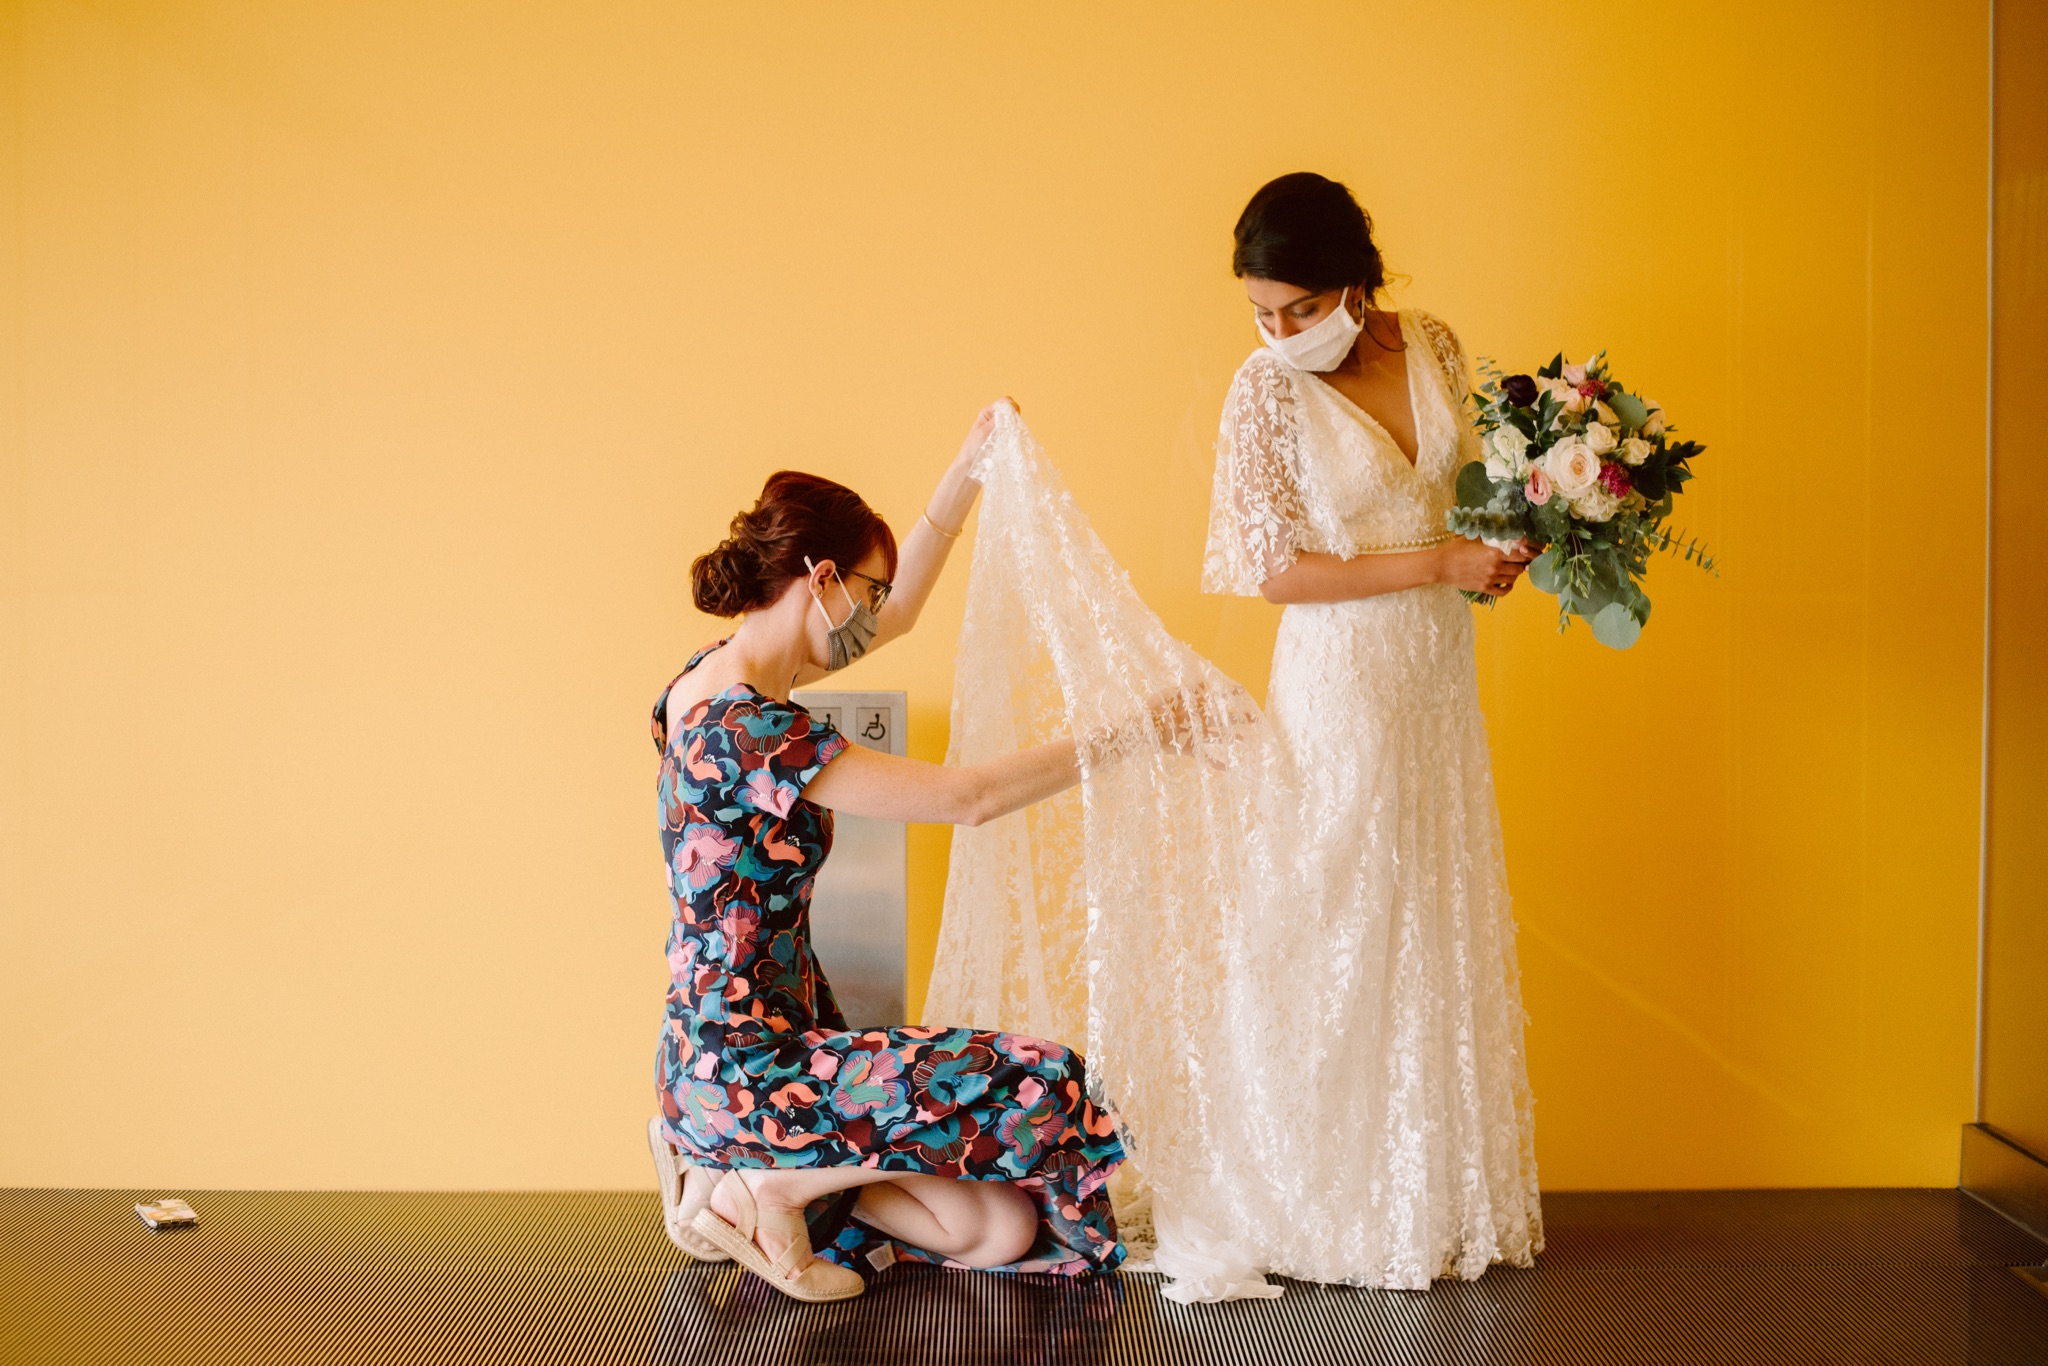 woman adjusting bride's wedding dress with a yellow wall in the background